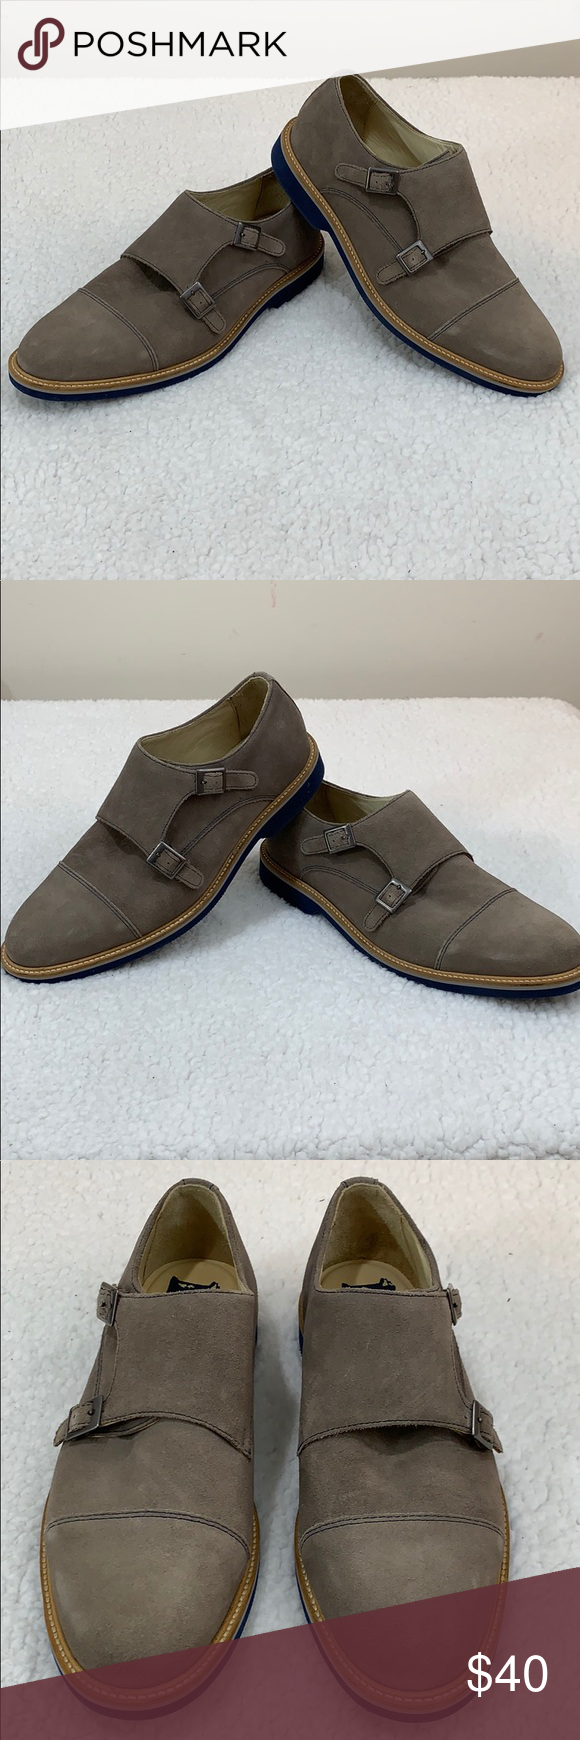 ee0b25fa621 Nordstrom 1901 Monk Strap Casual Shoes Size 10 Men s Nordstrom 1901 Monk  Strap Casual Suede Shoes